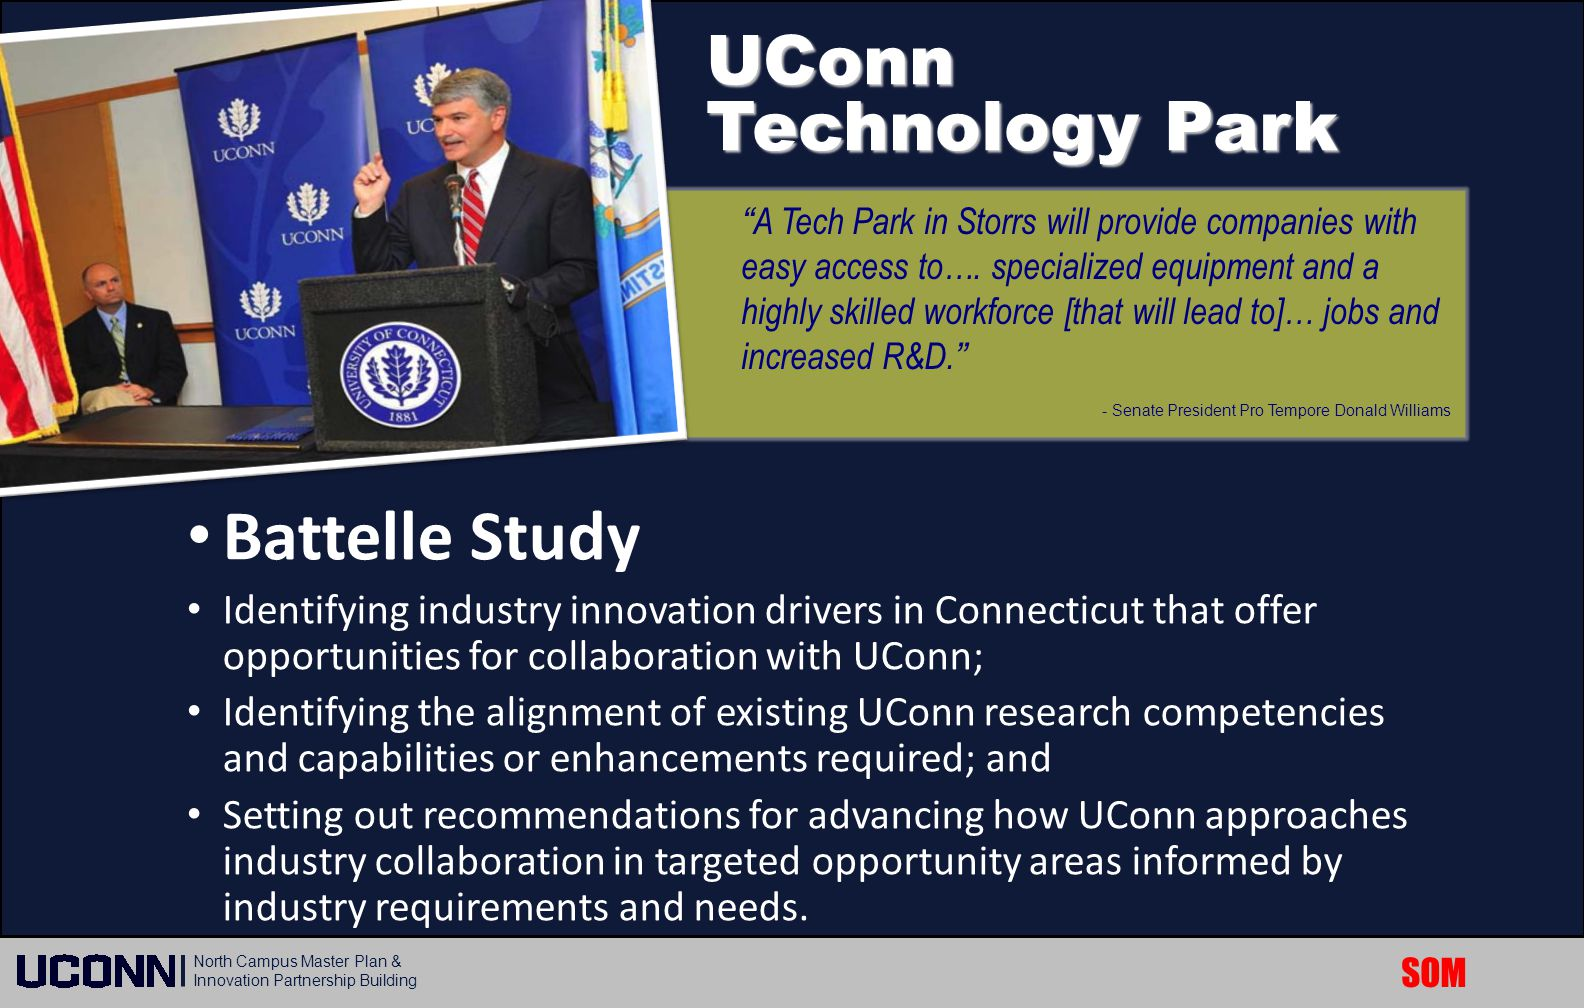 Battelle Study UConn Technology Park